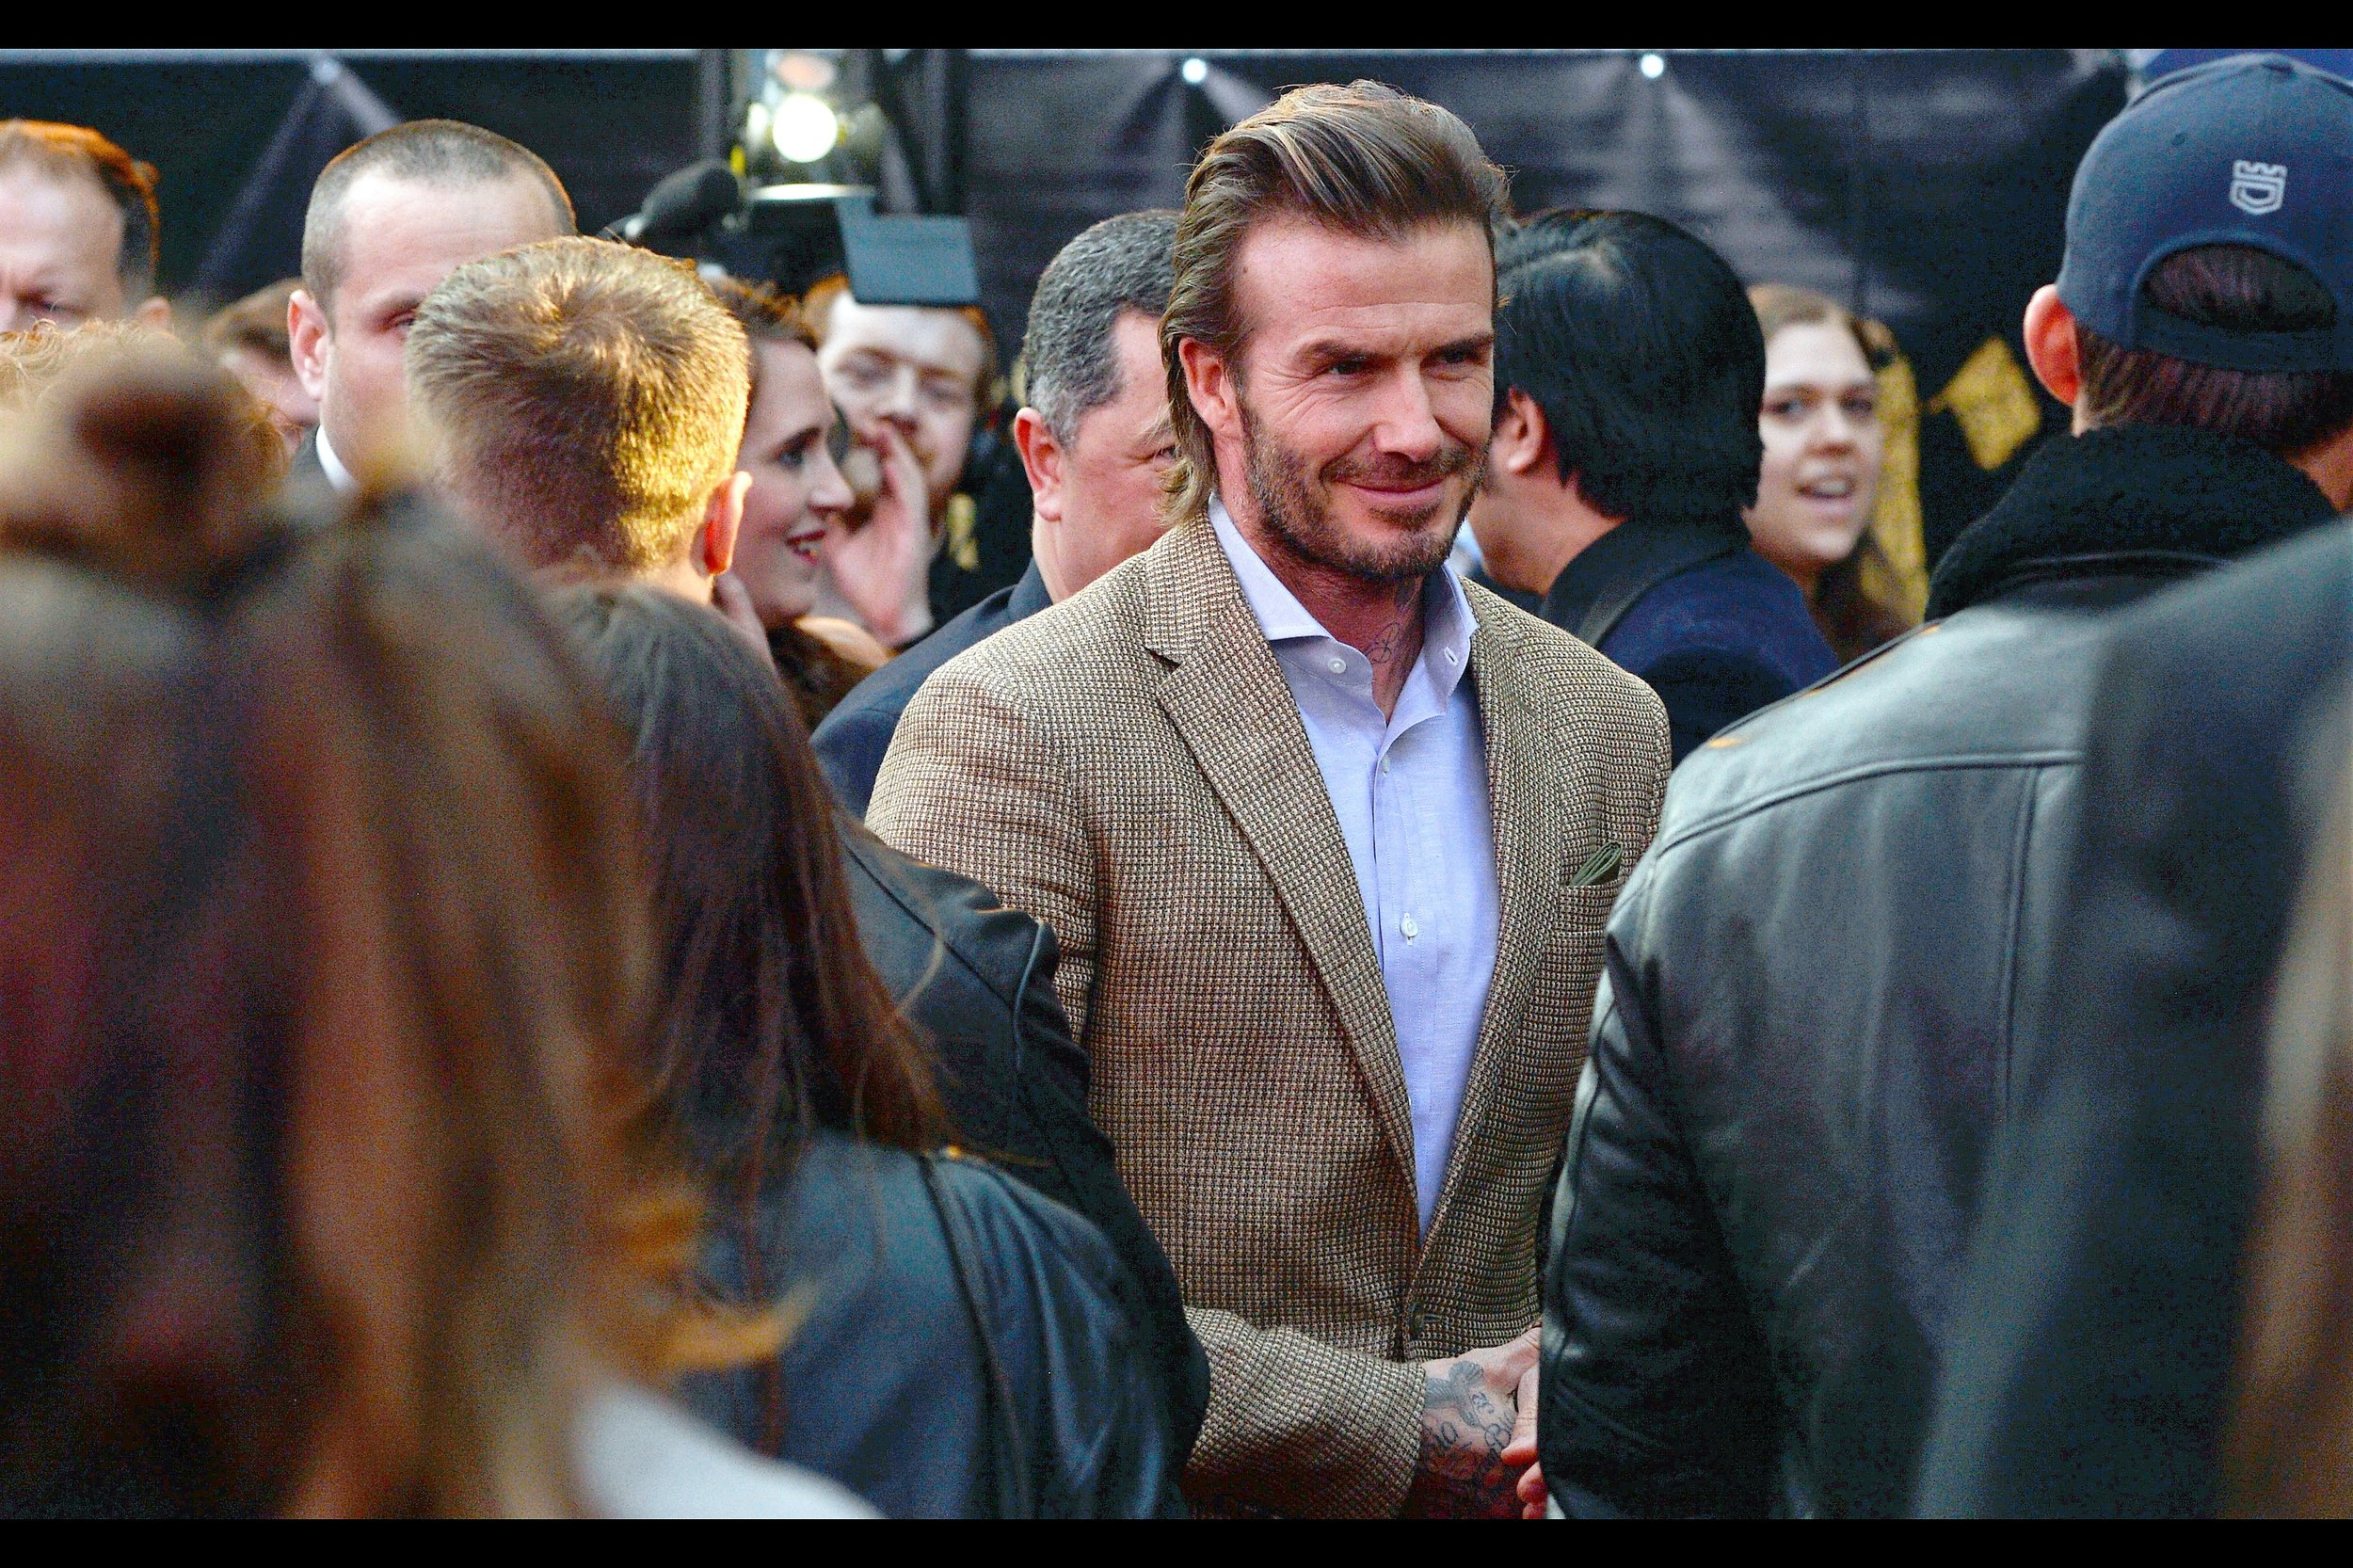 The man, the myth, the myriad of branded fragrances ...David Beckham apparently has 15 lines of dialogue as the character 'Trigger' in the movie.